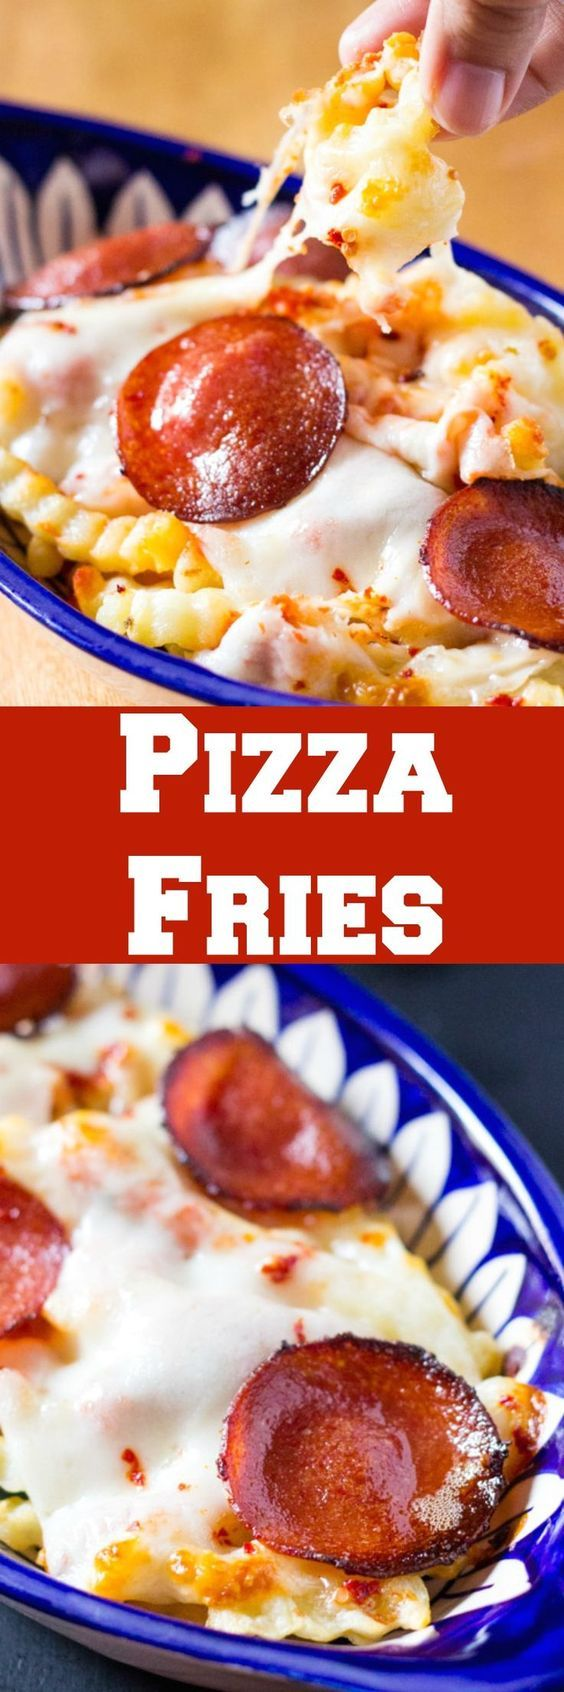 These pizza fries are loaded with pizza sauce, pepperoni